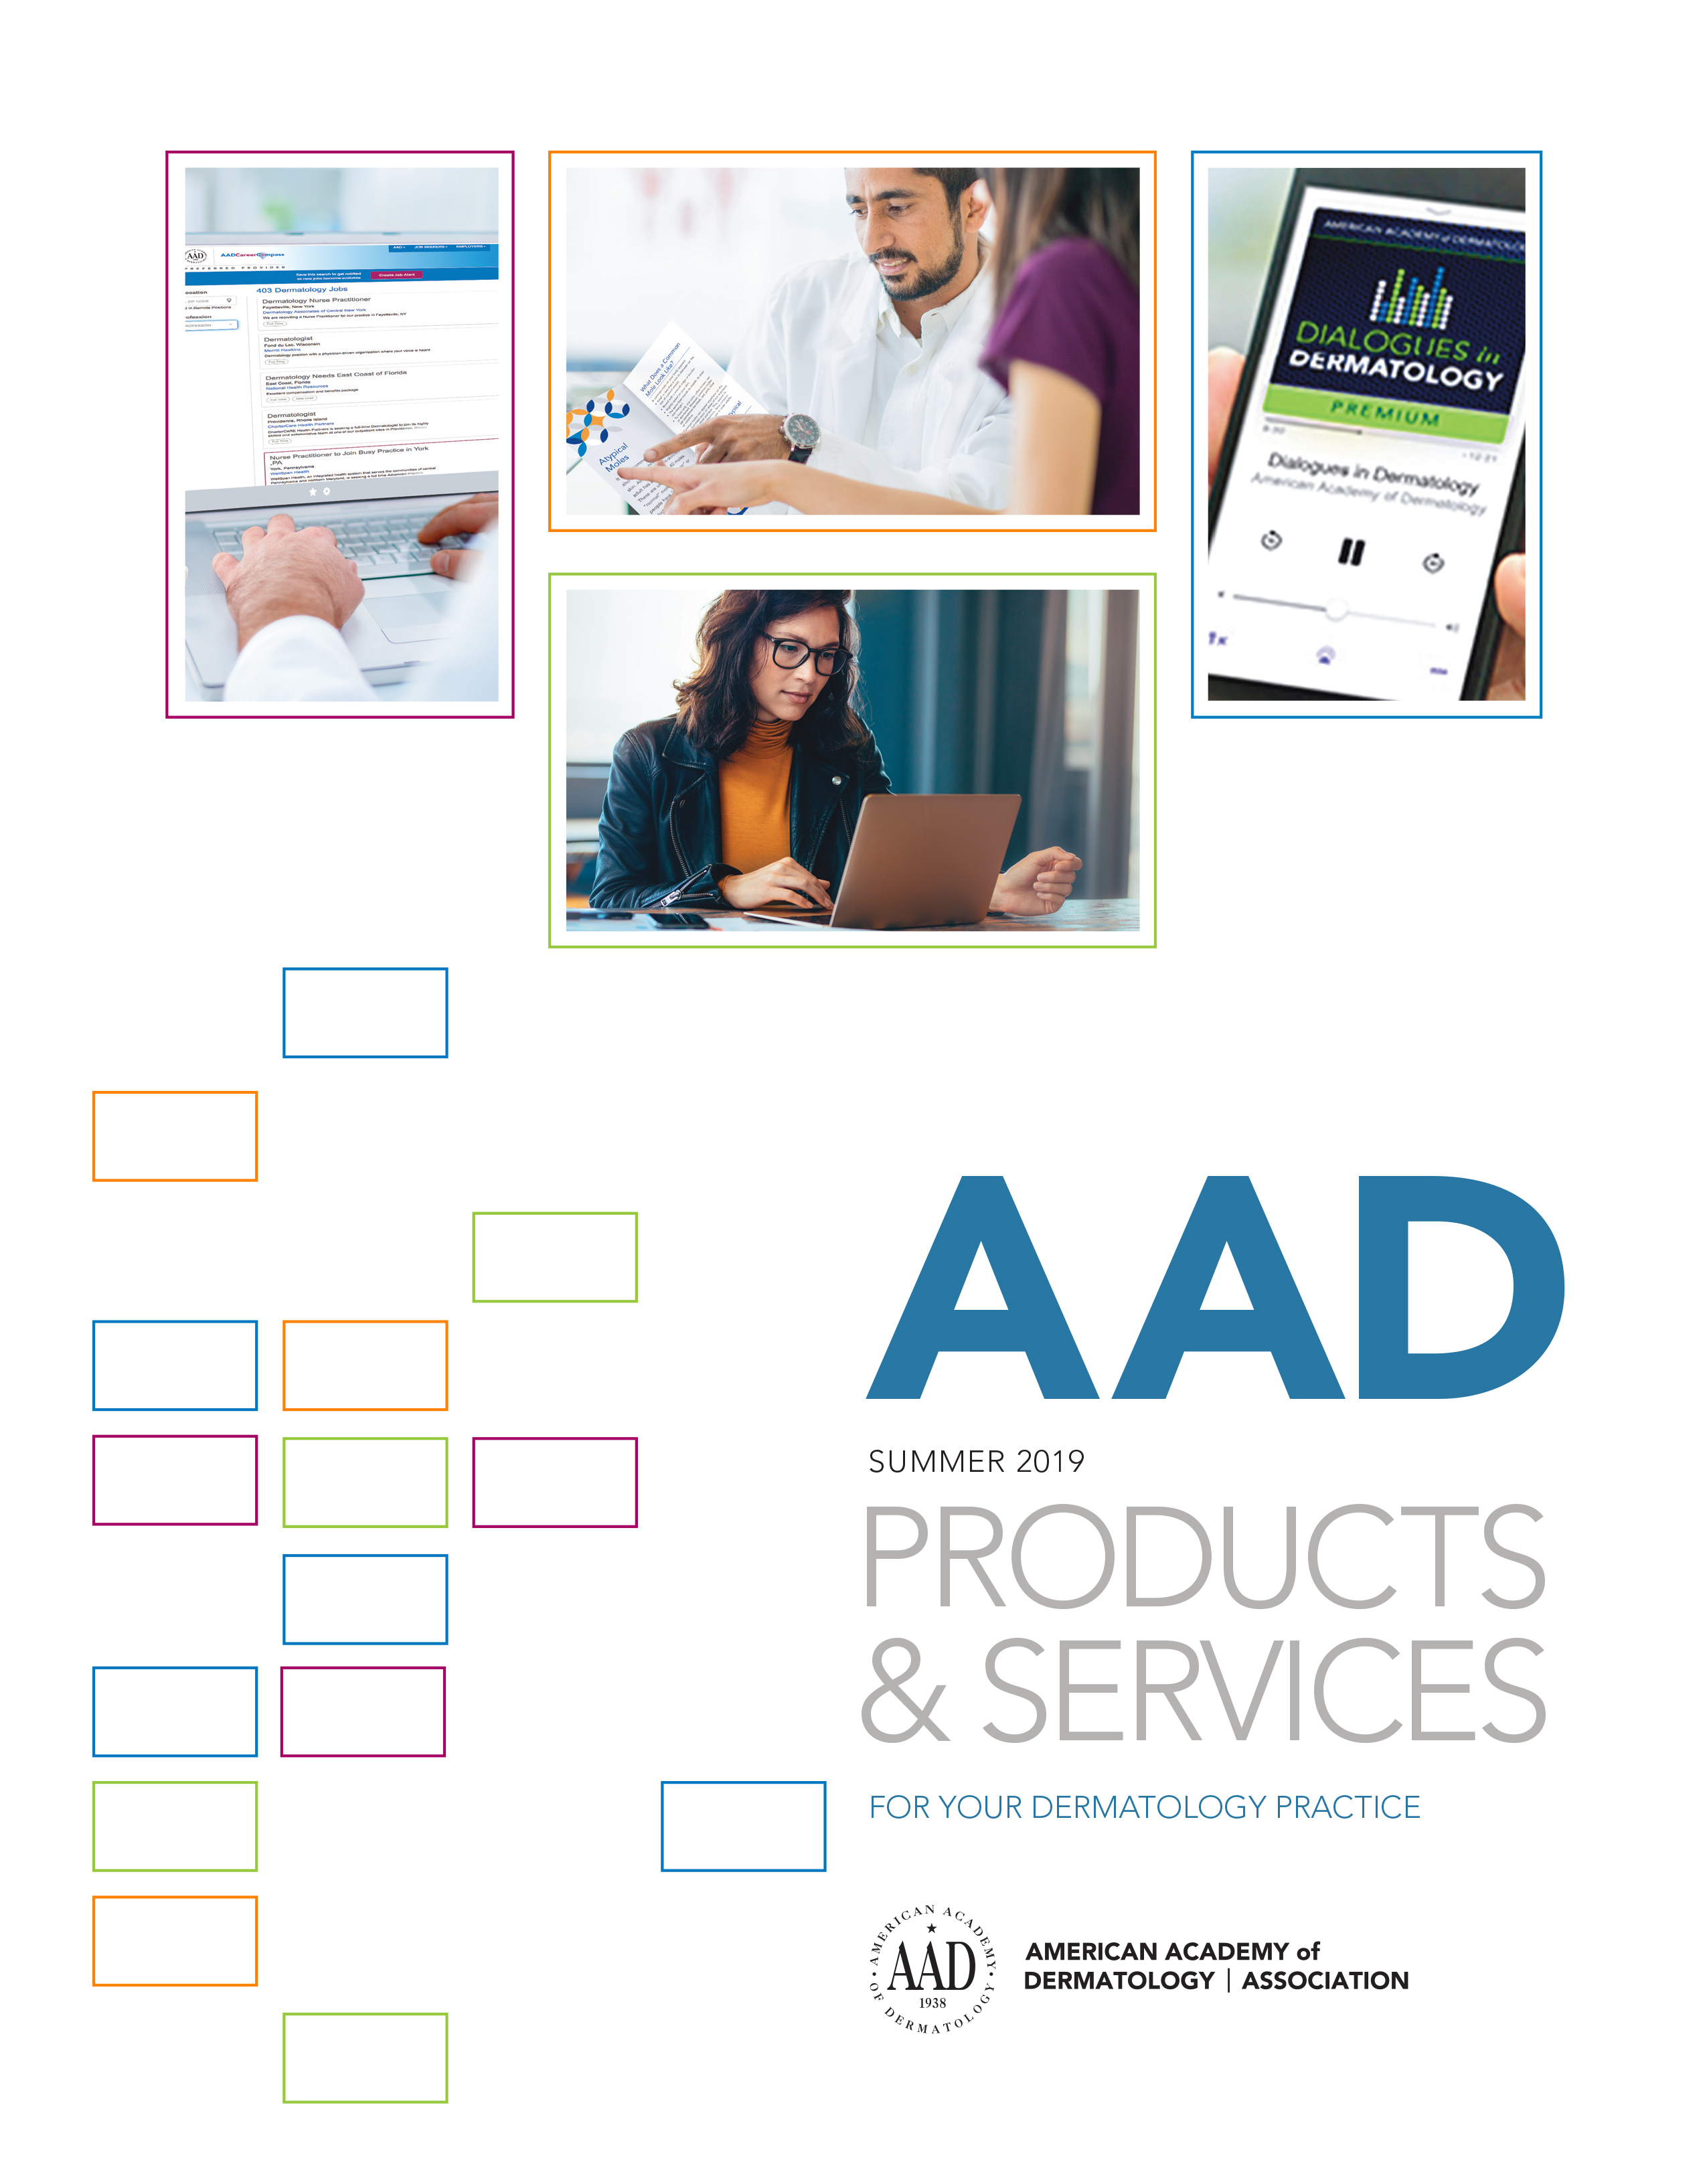 AAD Store | American Academy of Dermatology